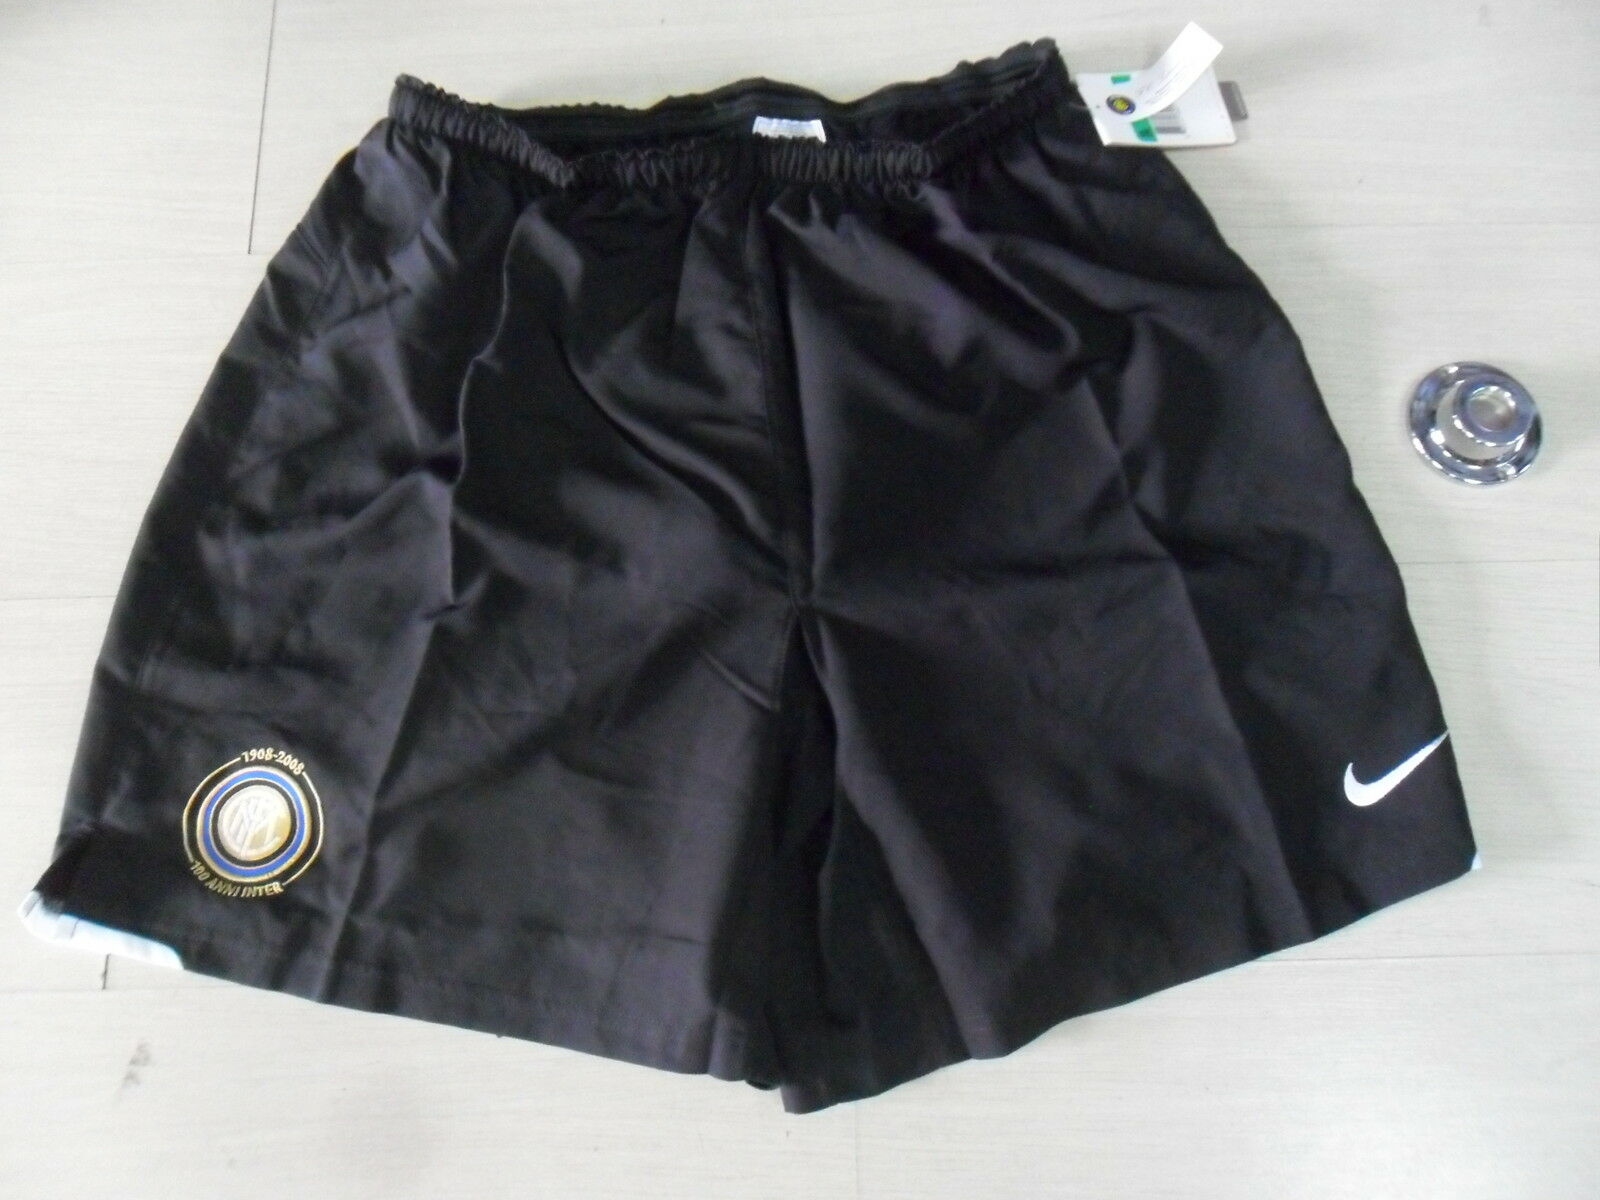 1152 NIKE TG. S INTER SHORTS WETTSPIEL HUNDERTJÄHRIGE HUNDERTJÄHRIGES BESTEHEN BESTEHEN BESTEHEN  | Mode-Muster